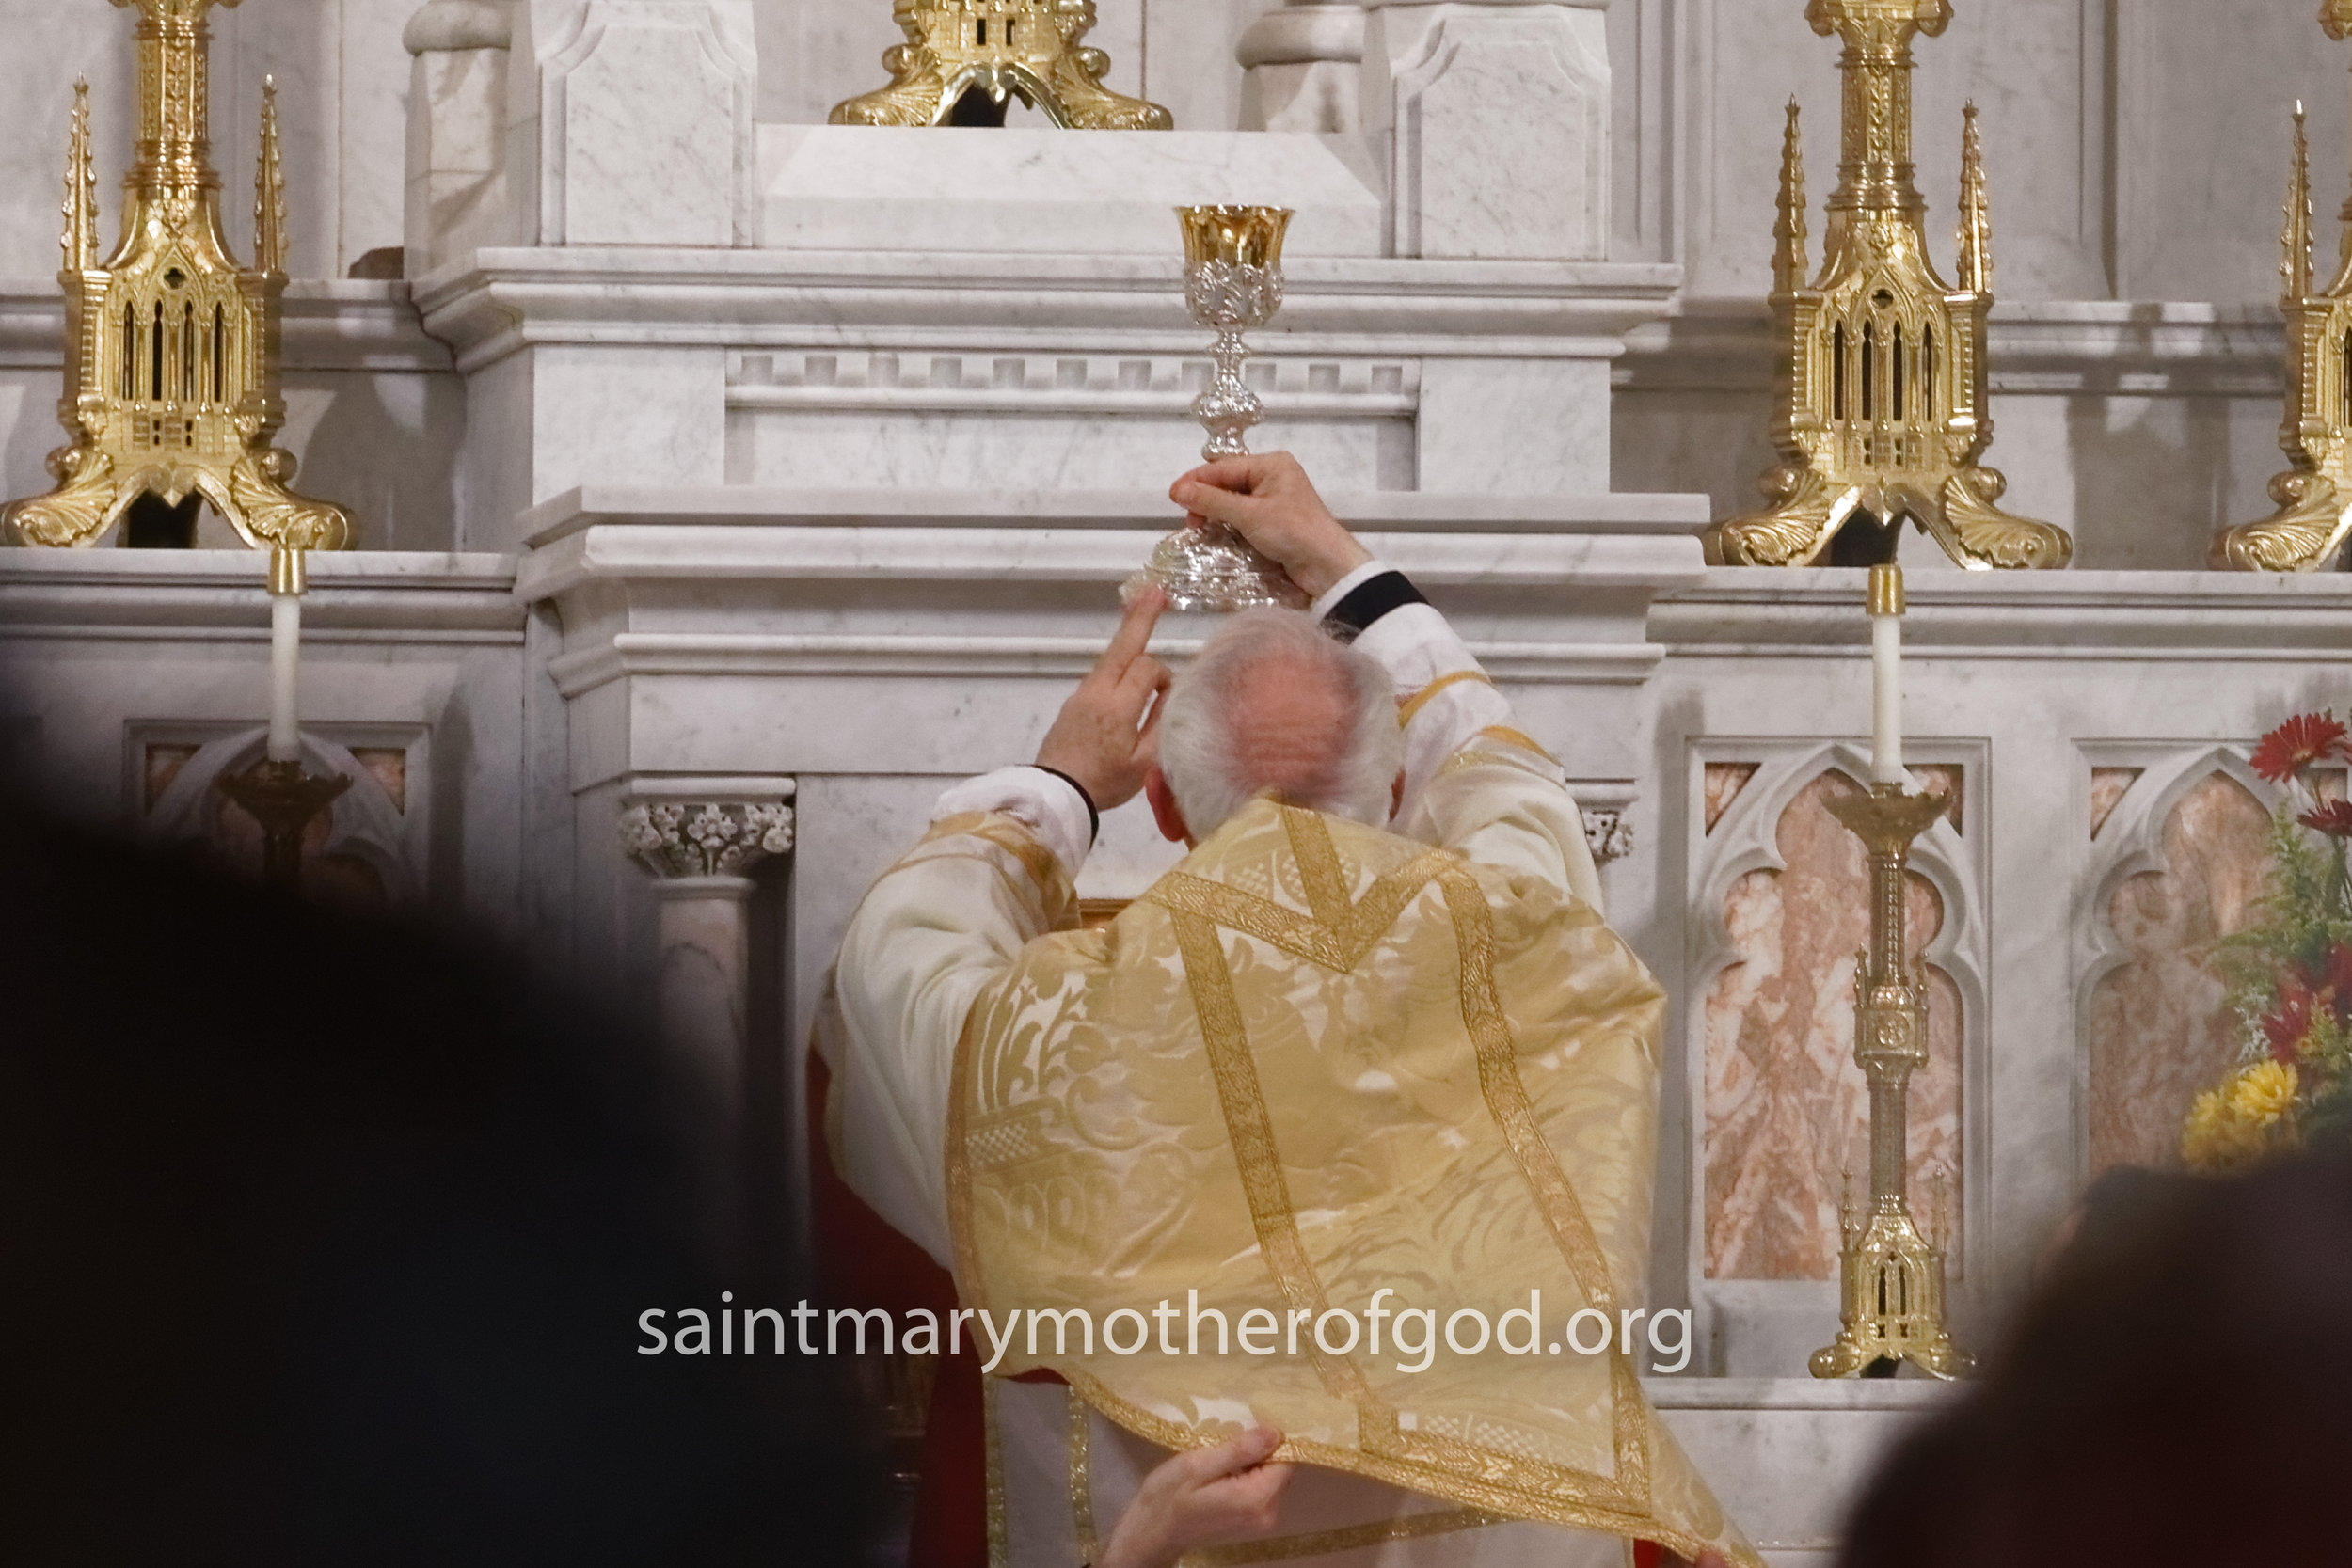 Saint Mary Mother of God Blessed Karl Vitacco Photos-42.jpg